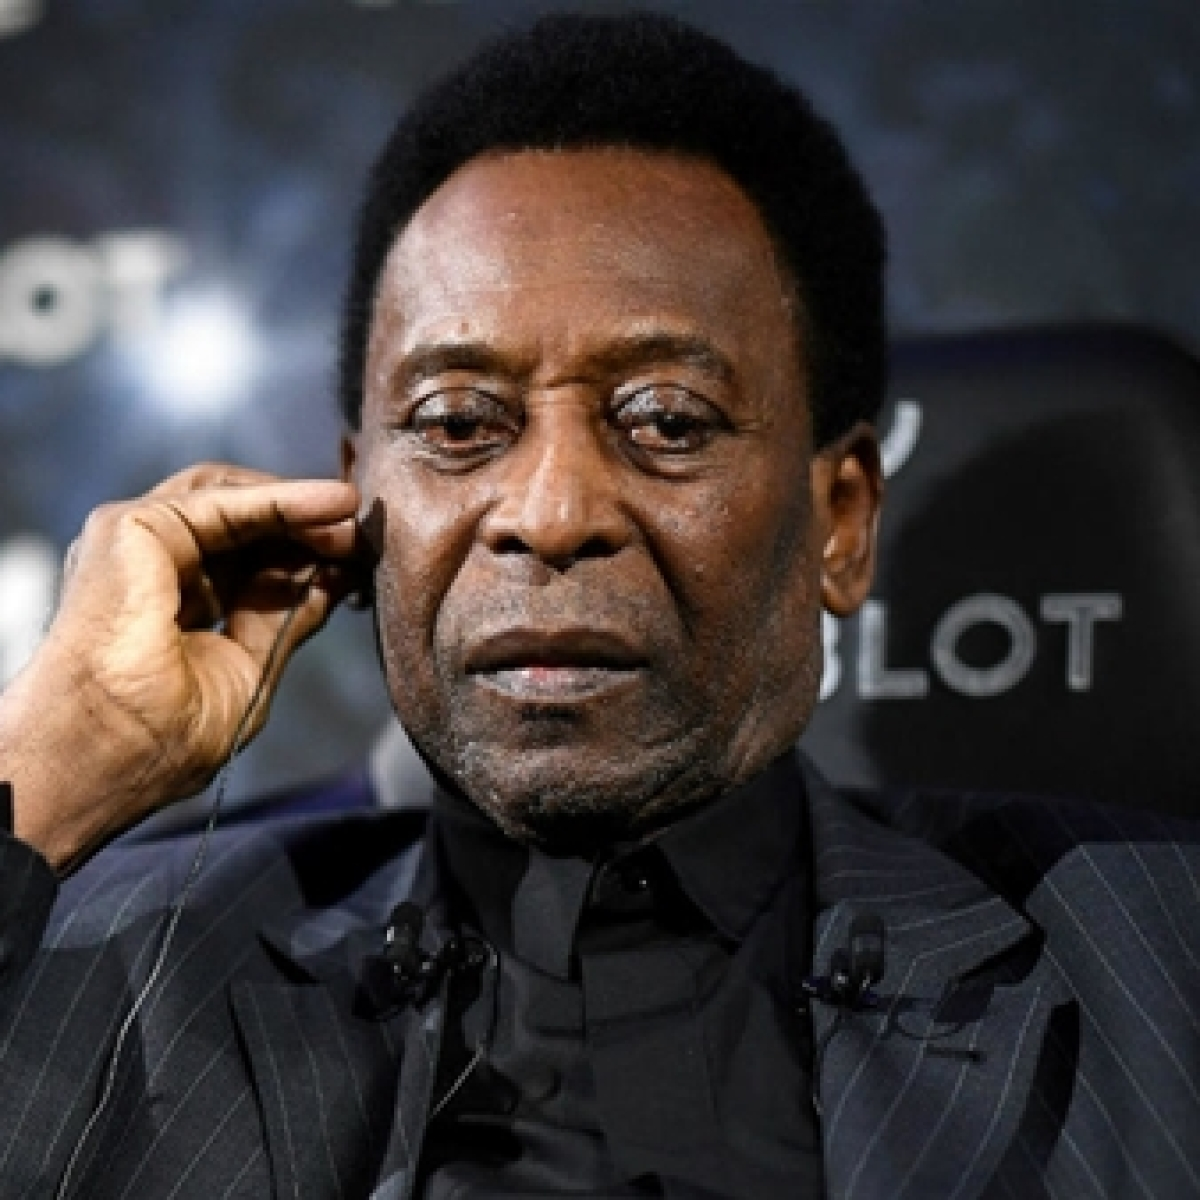 Brazilian football legend Pele says he's 'fine,' after son spoke of depression